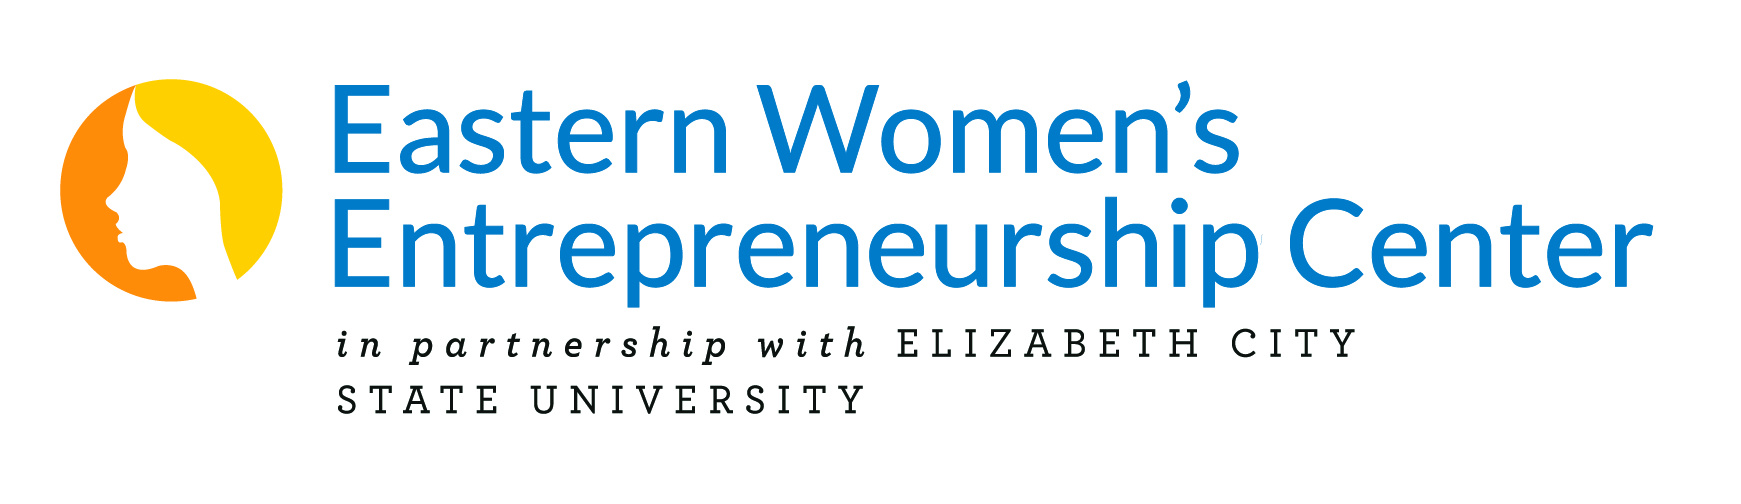 Eastern-Womens's-Enrepreneurship-Center-logo.jpg